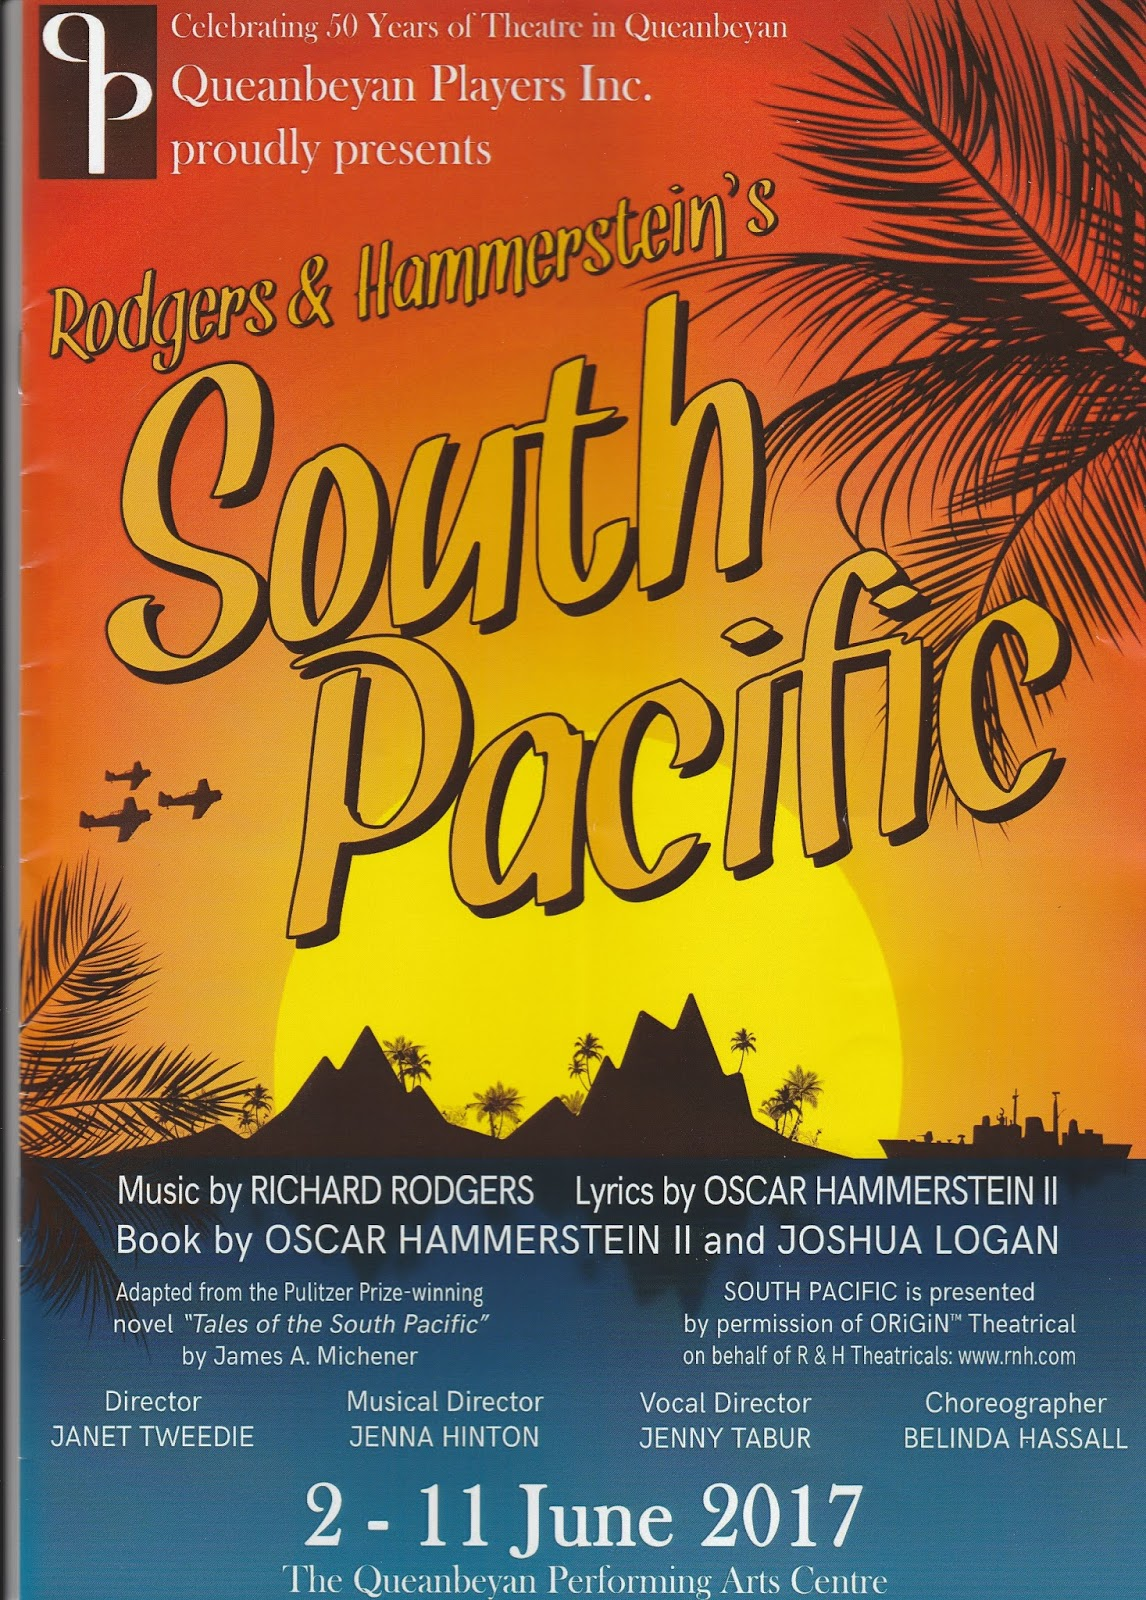 Canberra Critics Circle SOUTH PACIFIC - Tales of the south pacific